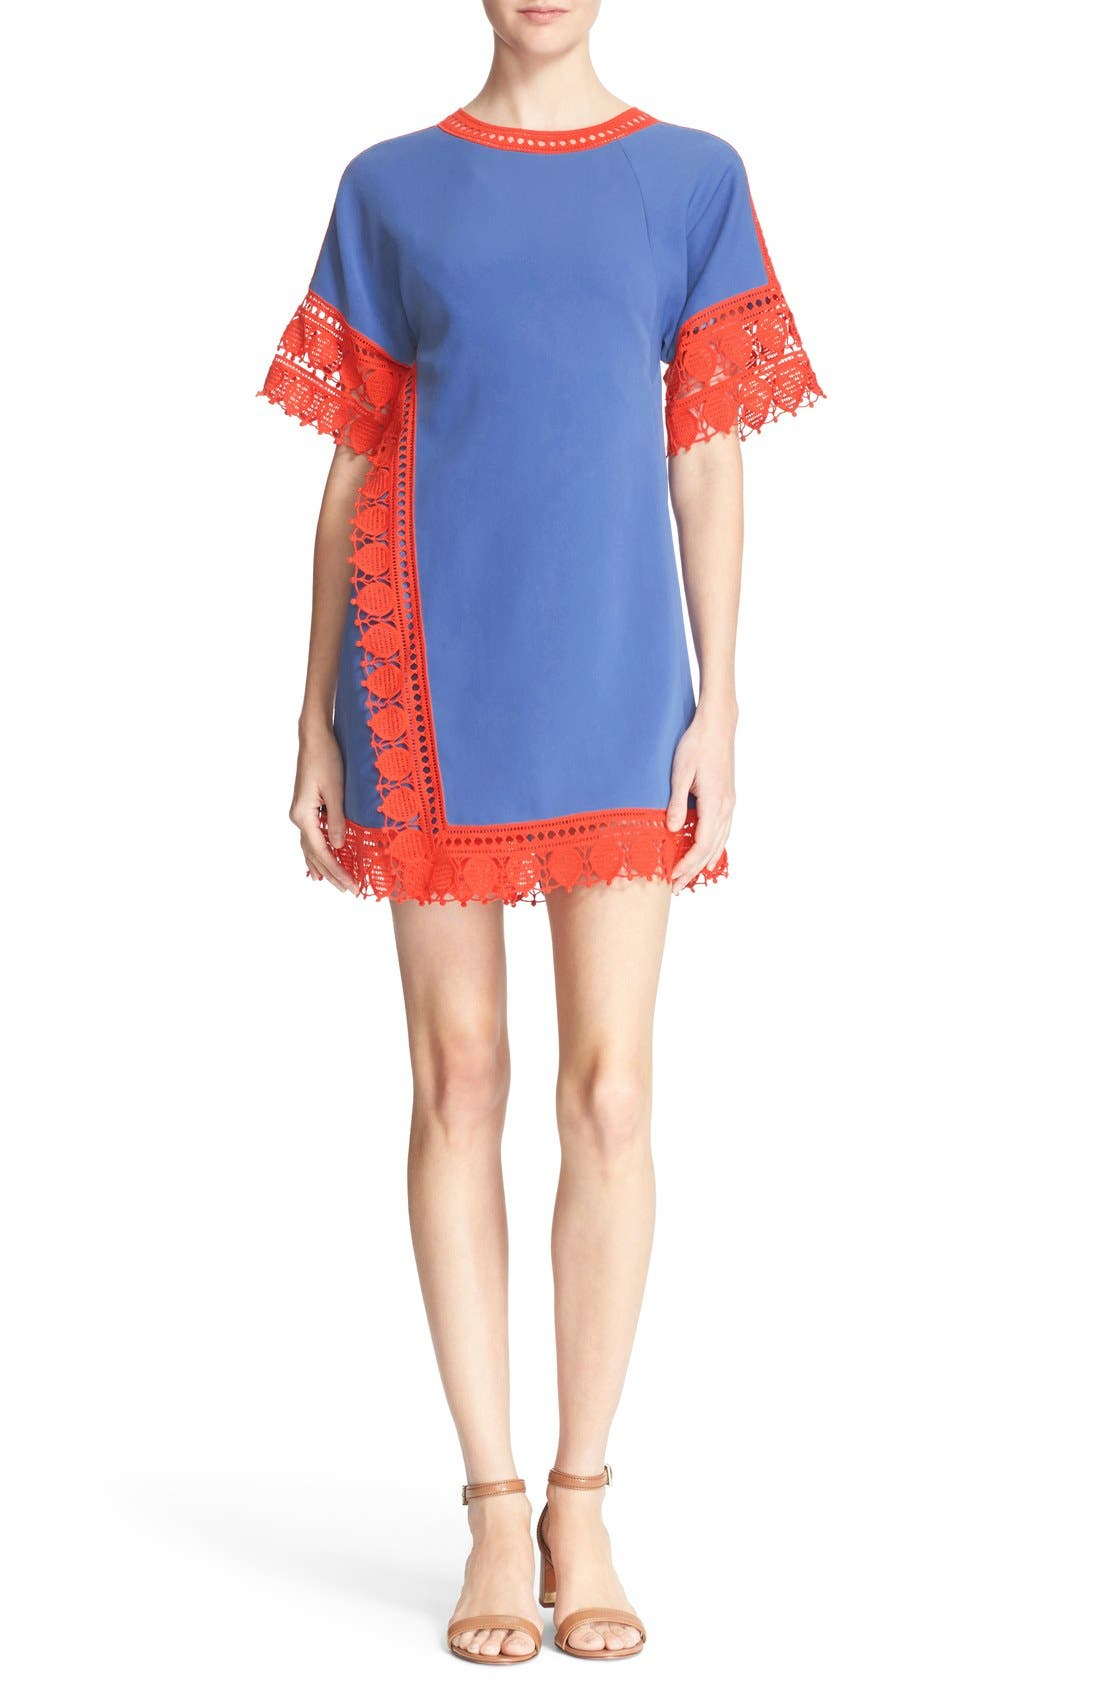 Main Image - Tory Burch 'Marissa' Lace Trim Dress